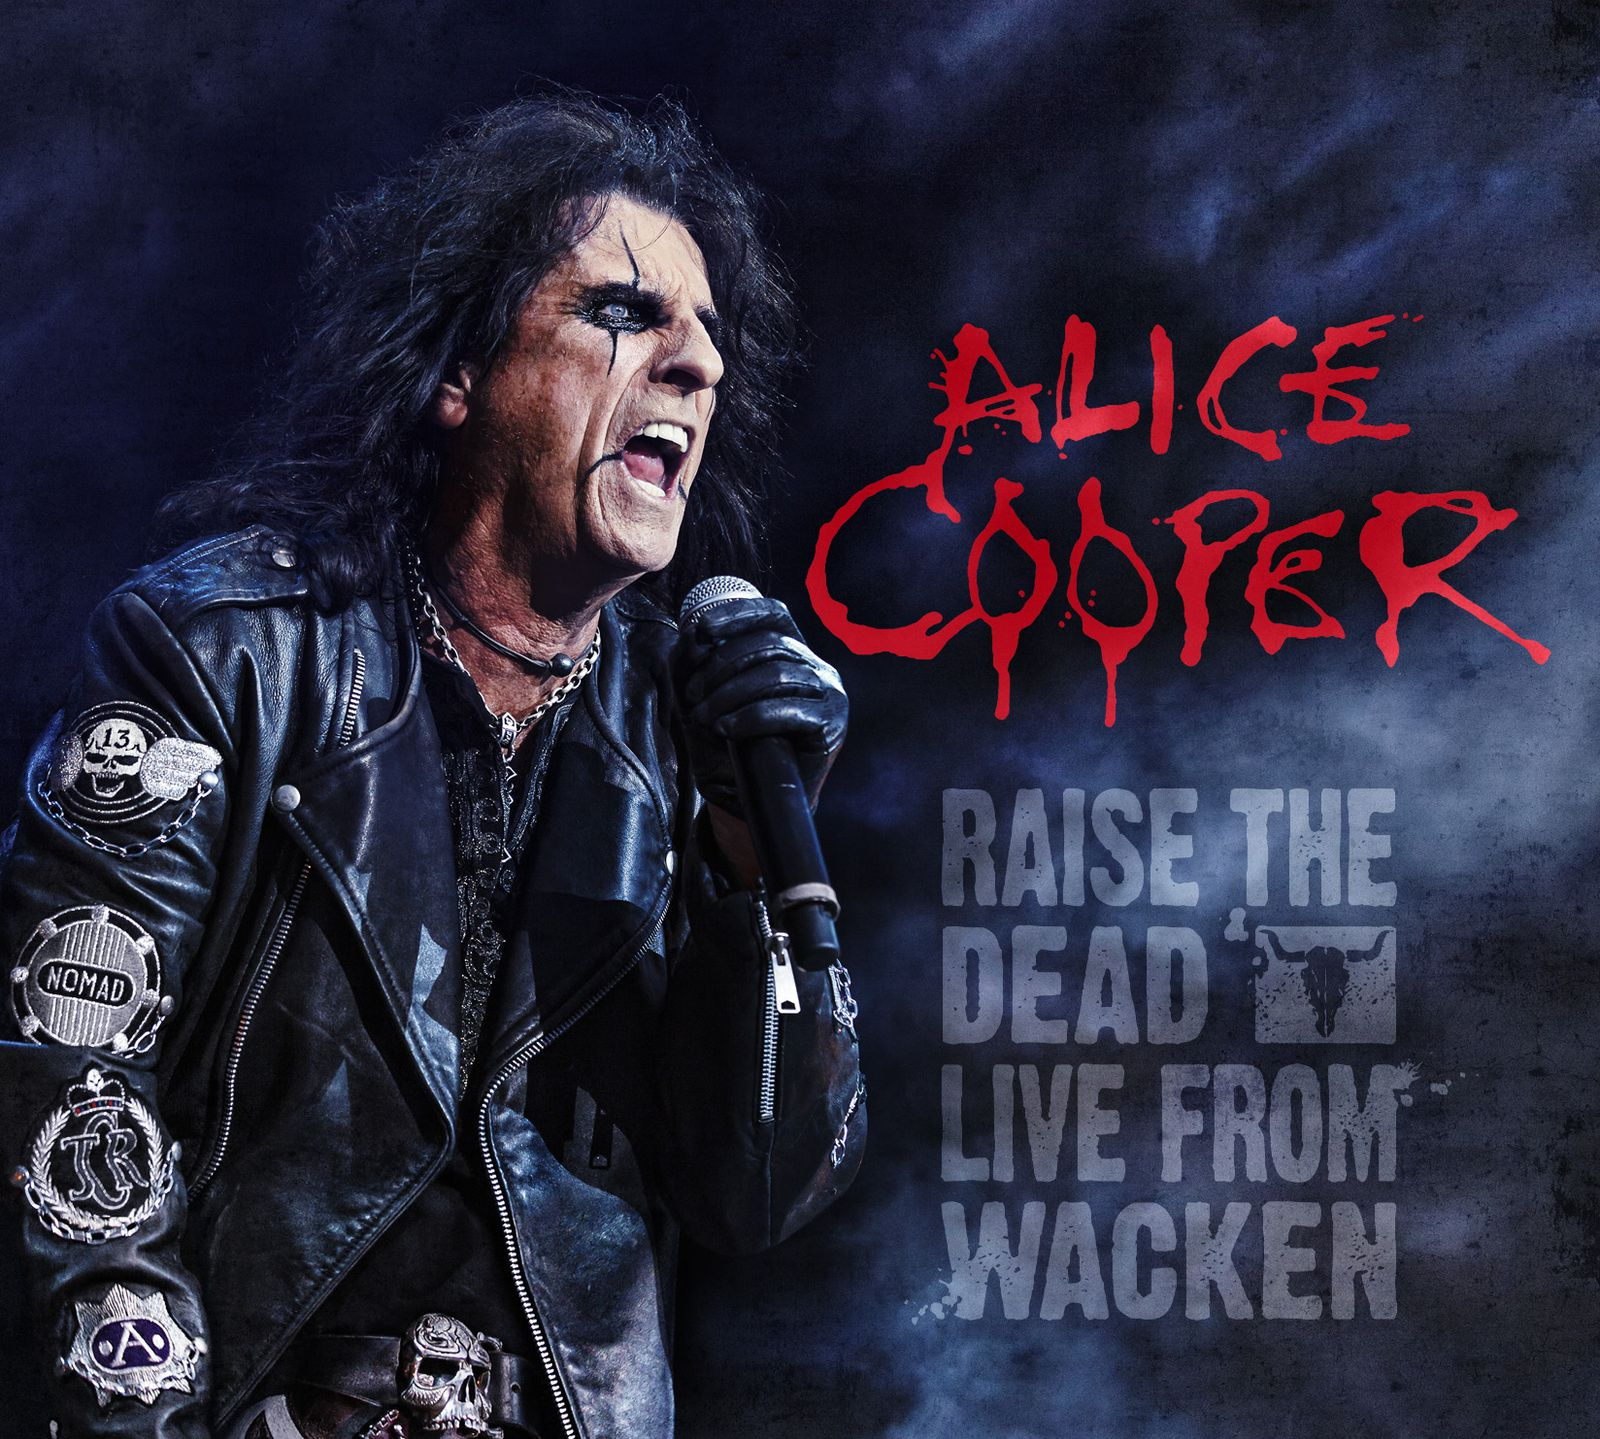 Cover and track list from ALICE COOPER CD/DVD